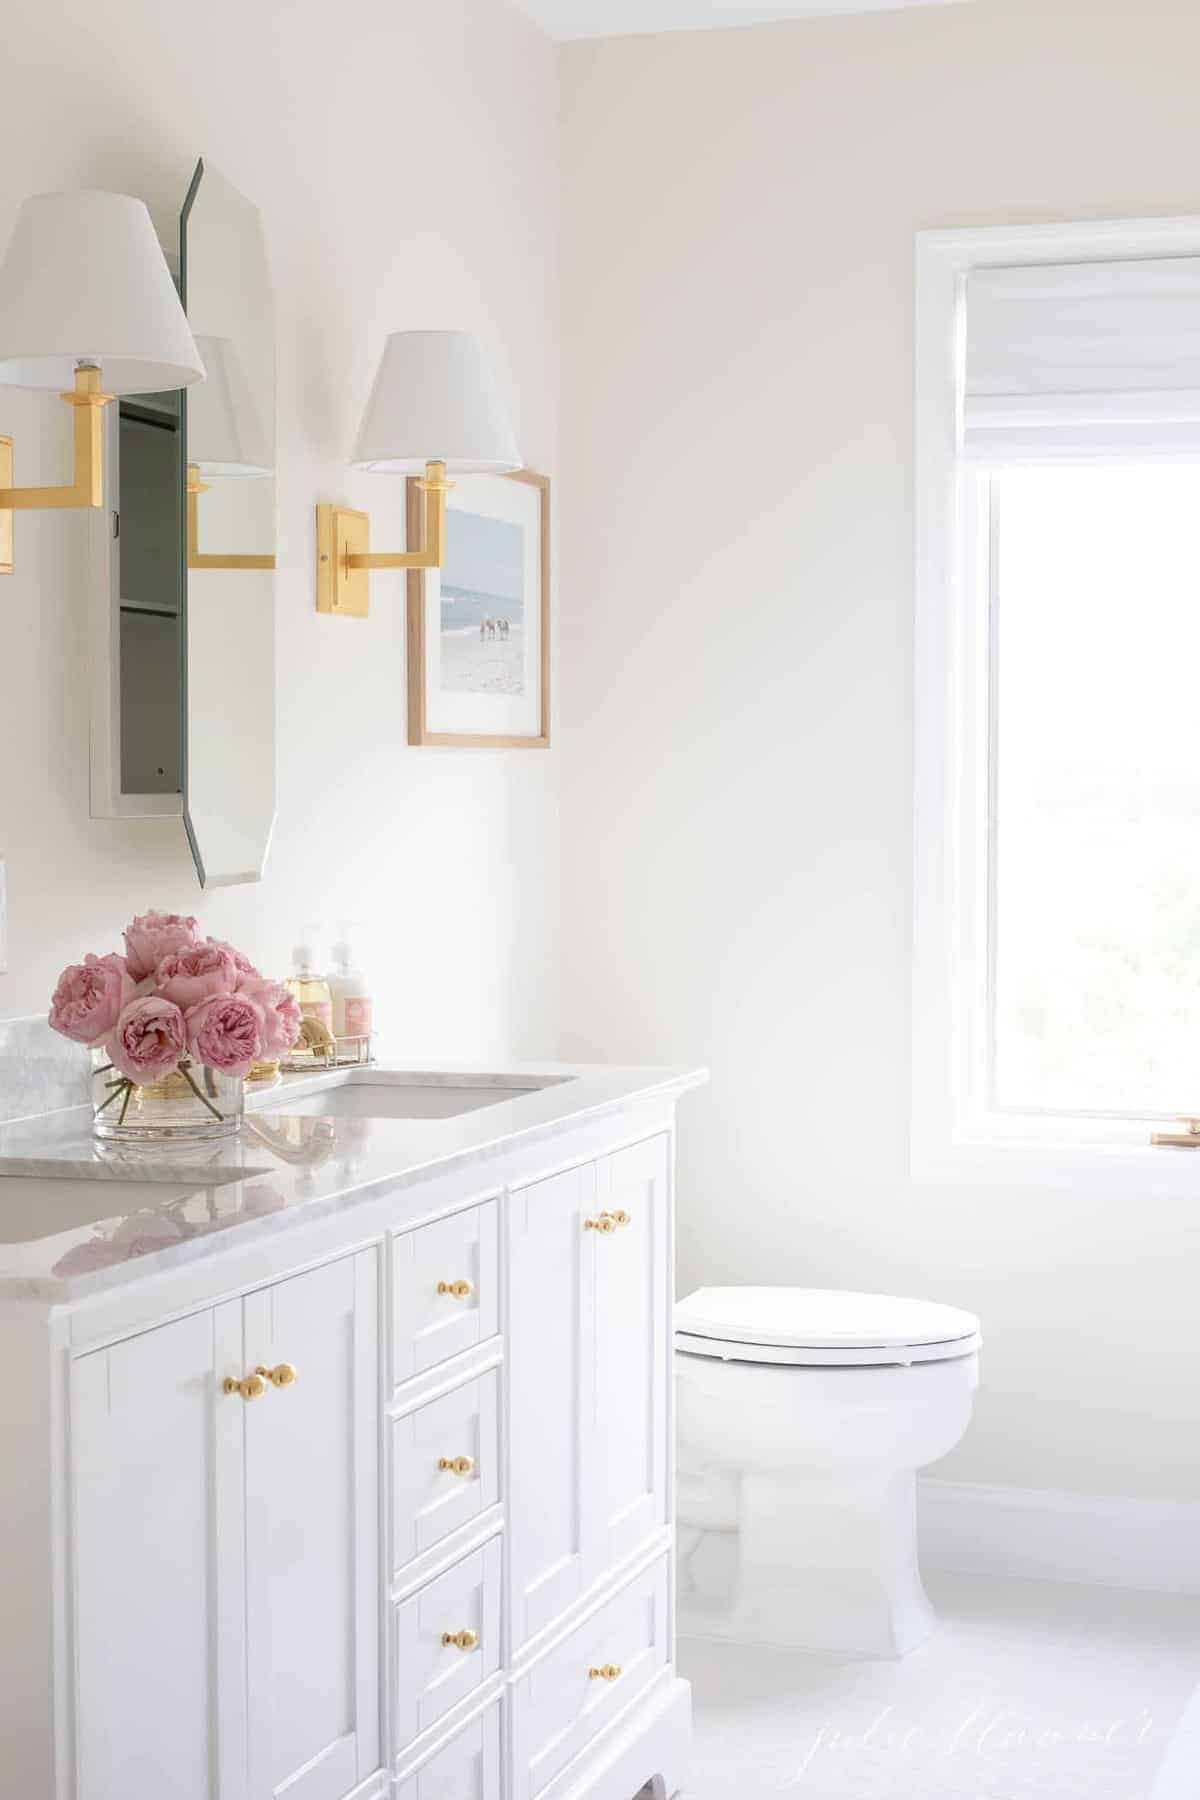 A white bathroom with a satin sheen of cream paint on the walls.